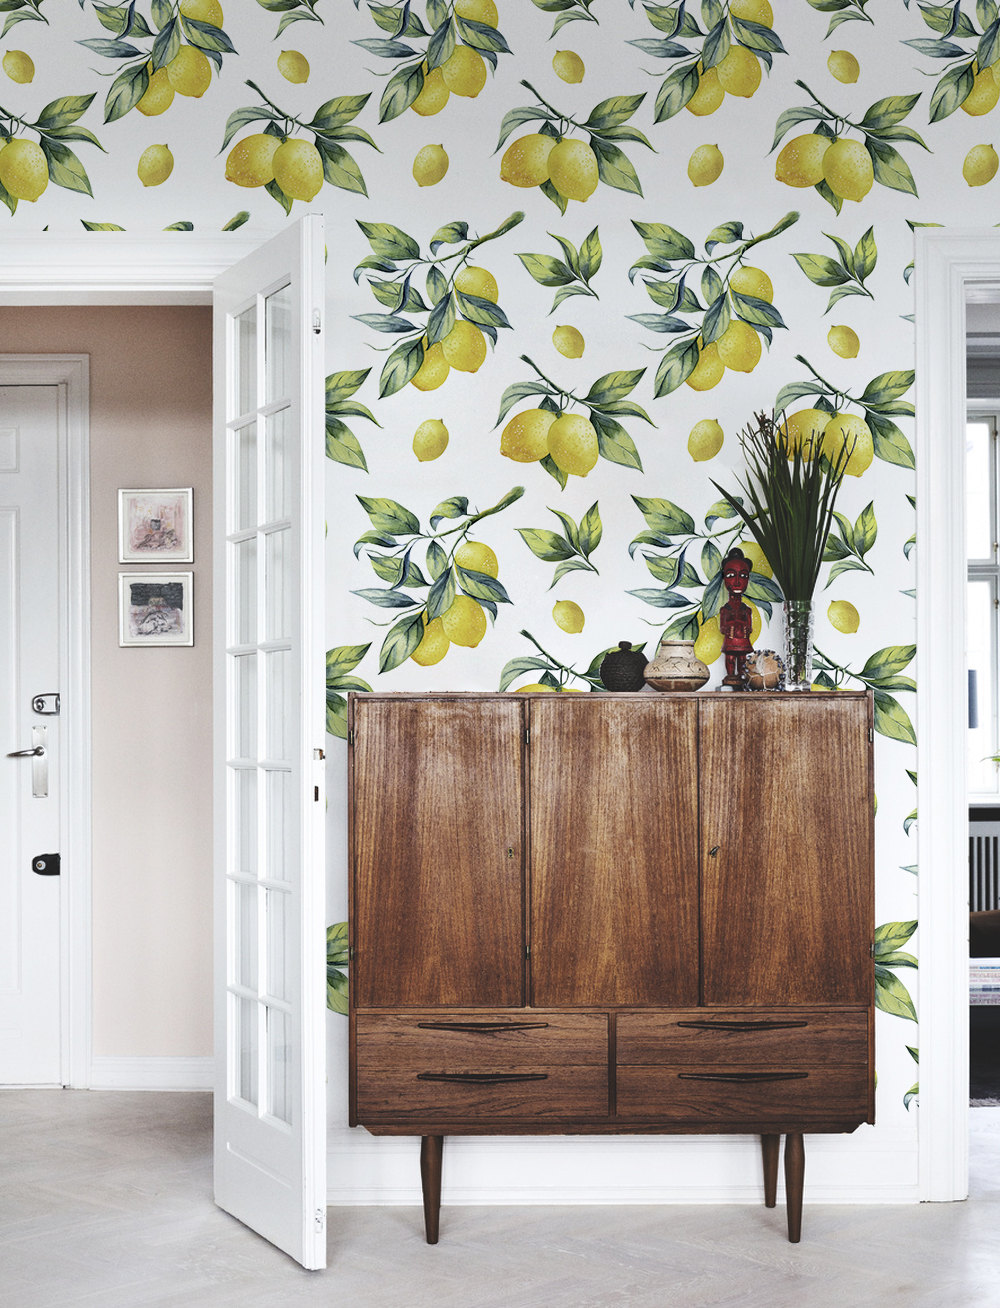 Lemon Wallpaper Removable Wallpapers Peel And Stick Wall